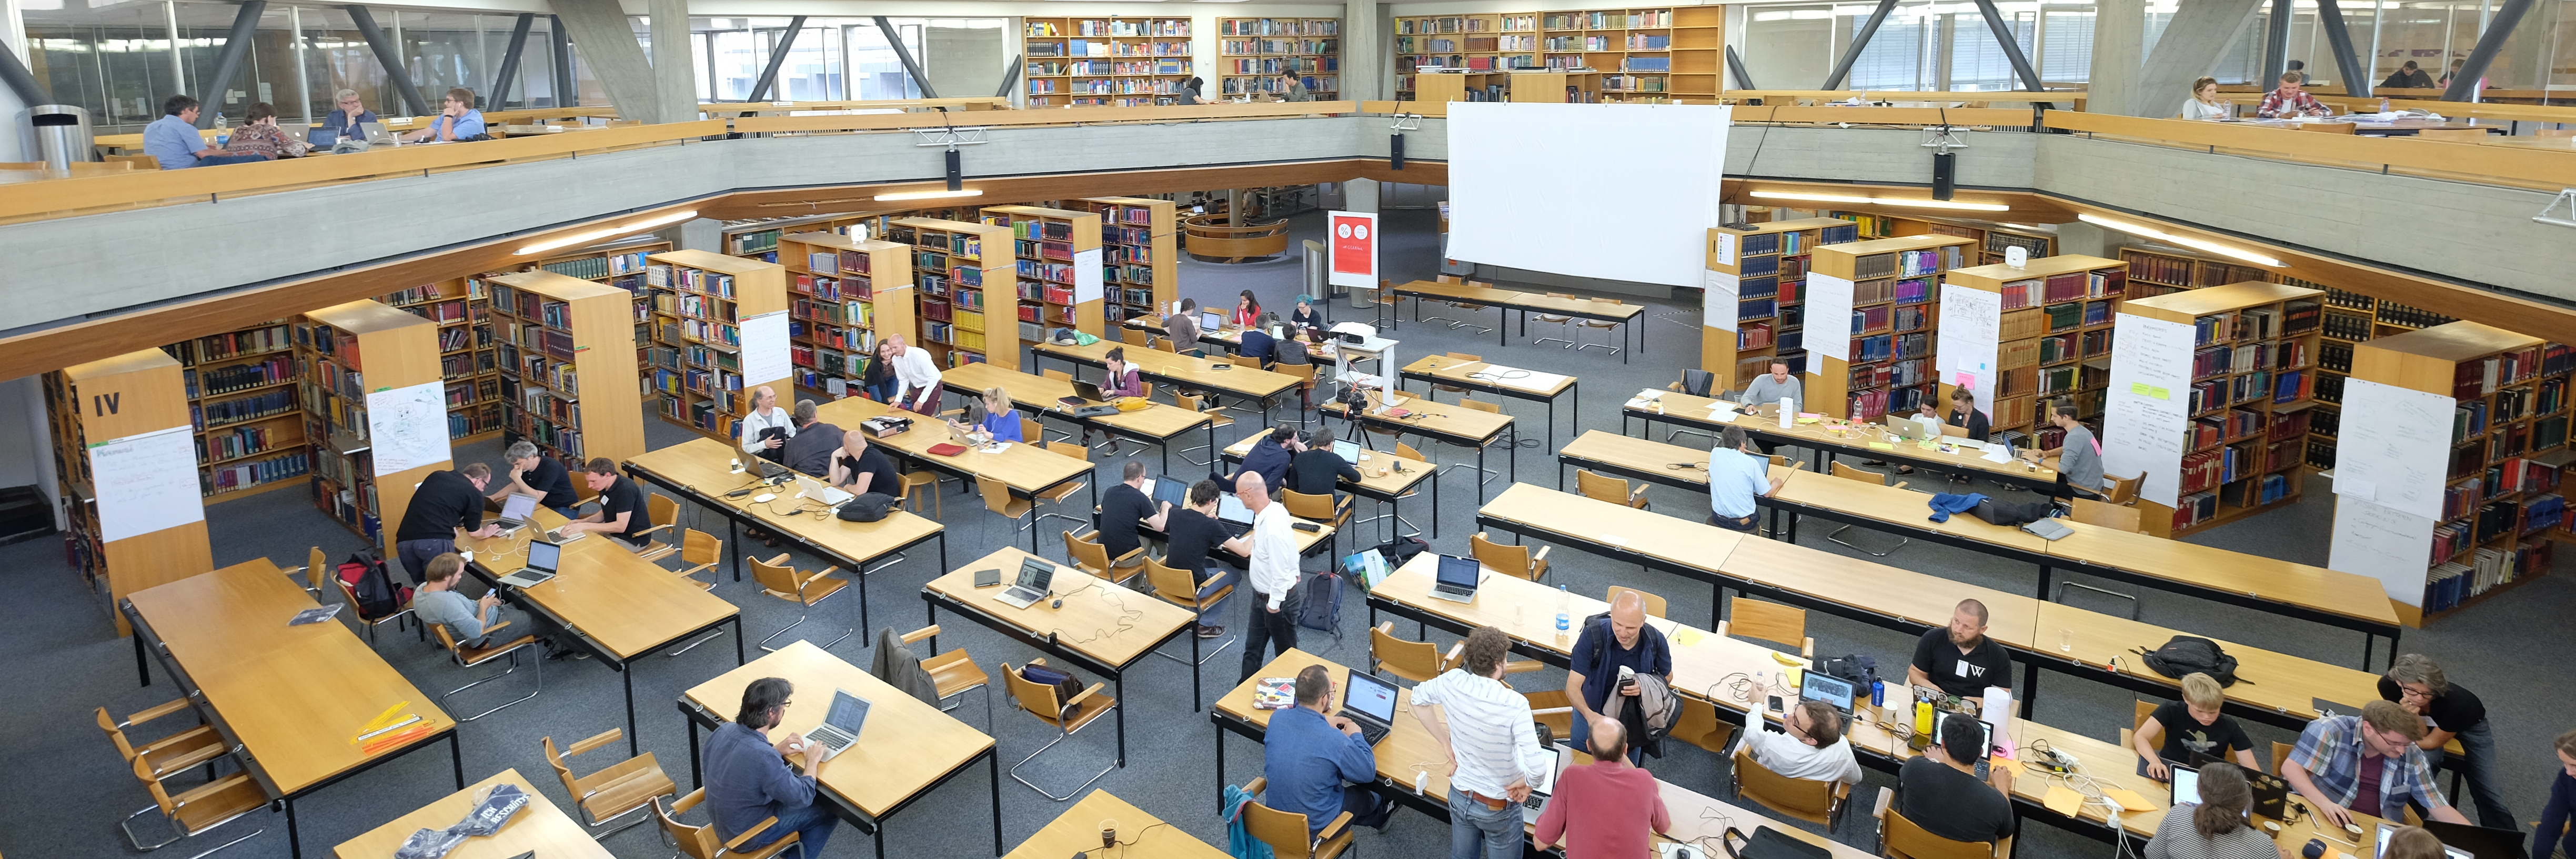 Swiss Open Cultural Data Hackathon 2016 at the Basel University Library. Photo by M. Schwendener, Commons